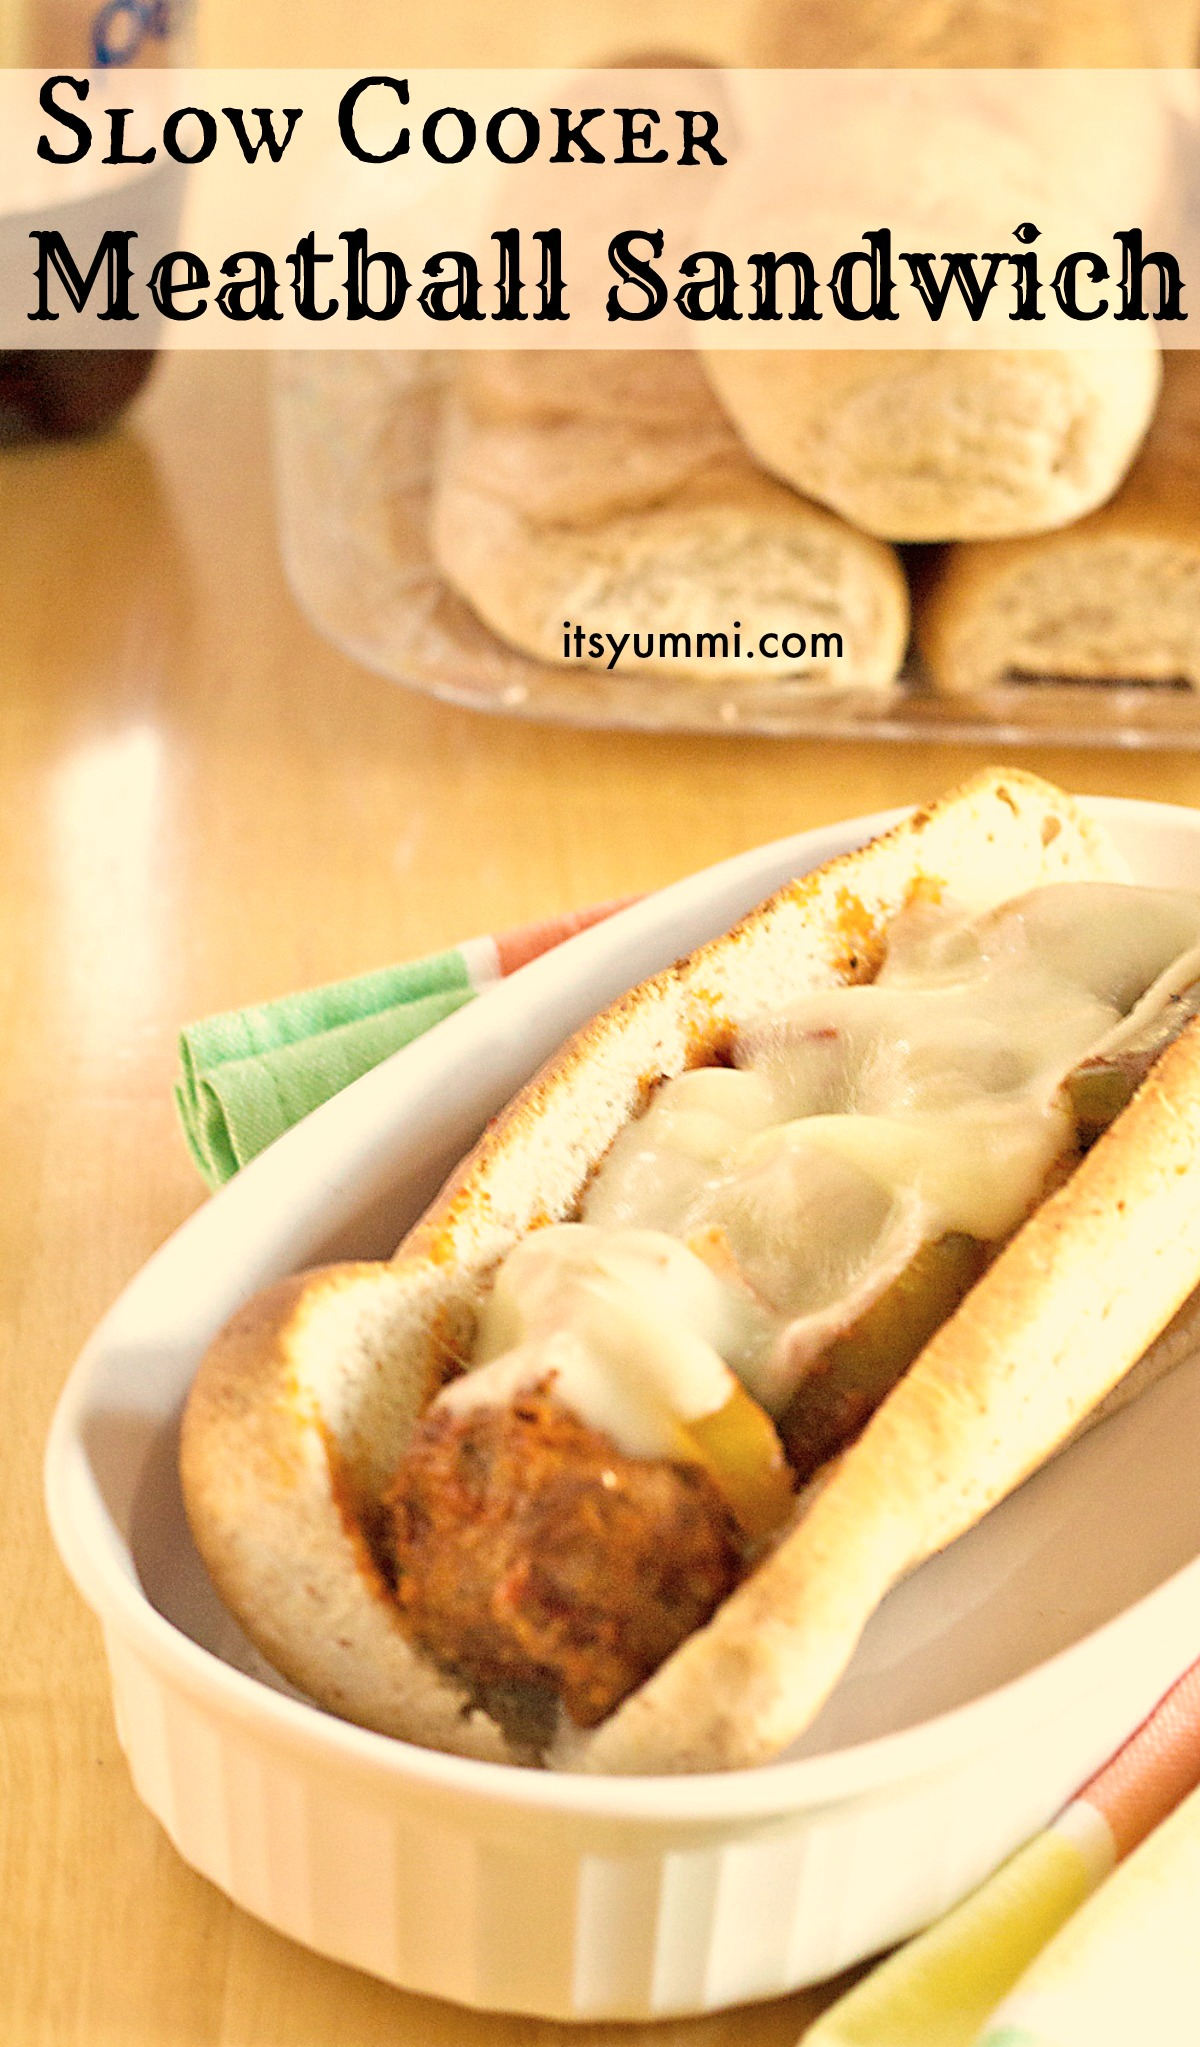 Slow Cooker Meatball Sandwiches Recipe from ItsYummi.com